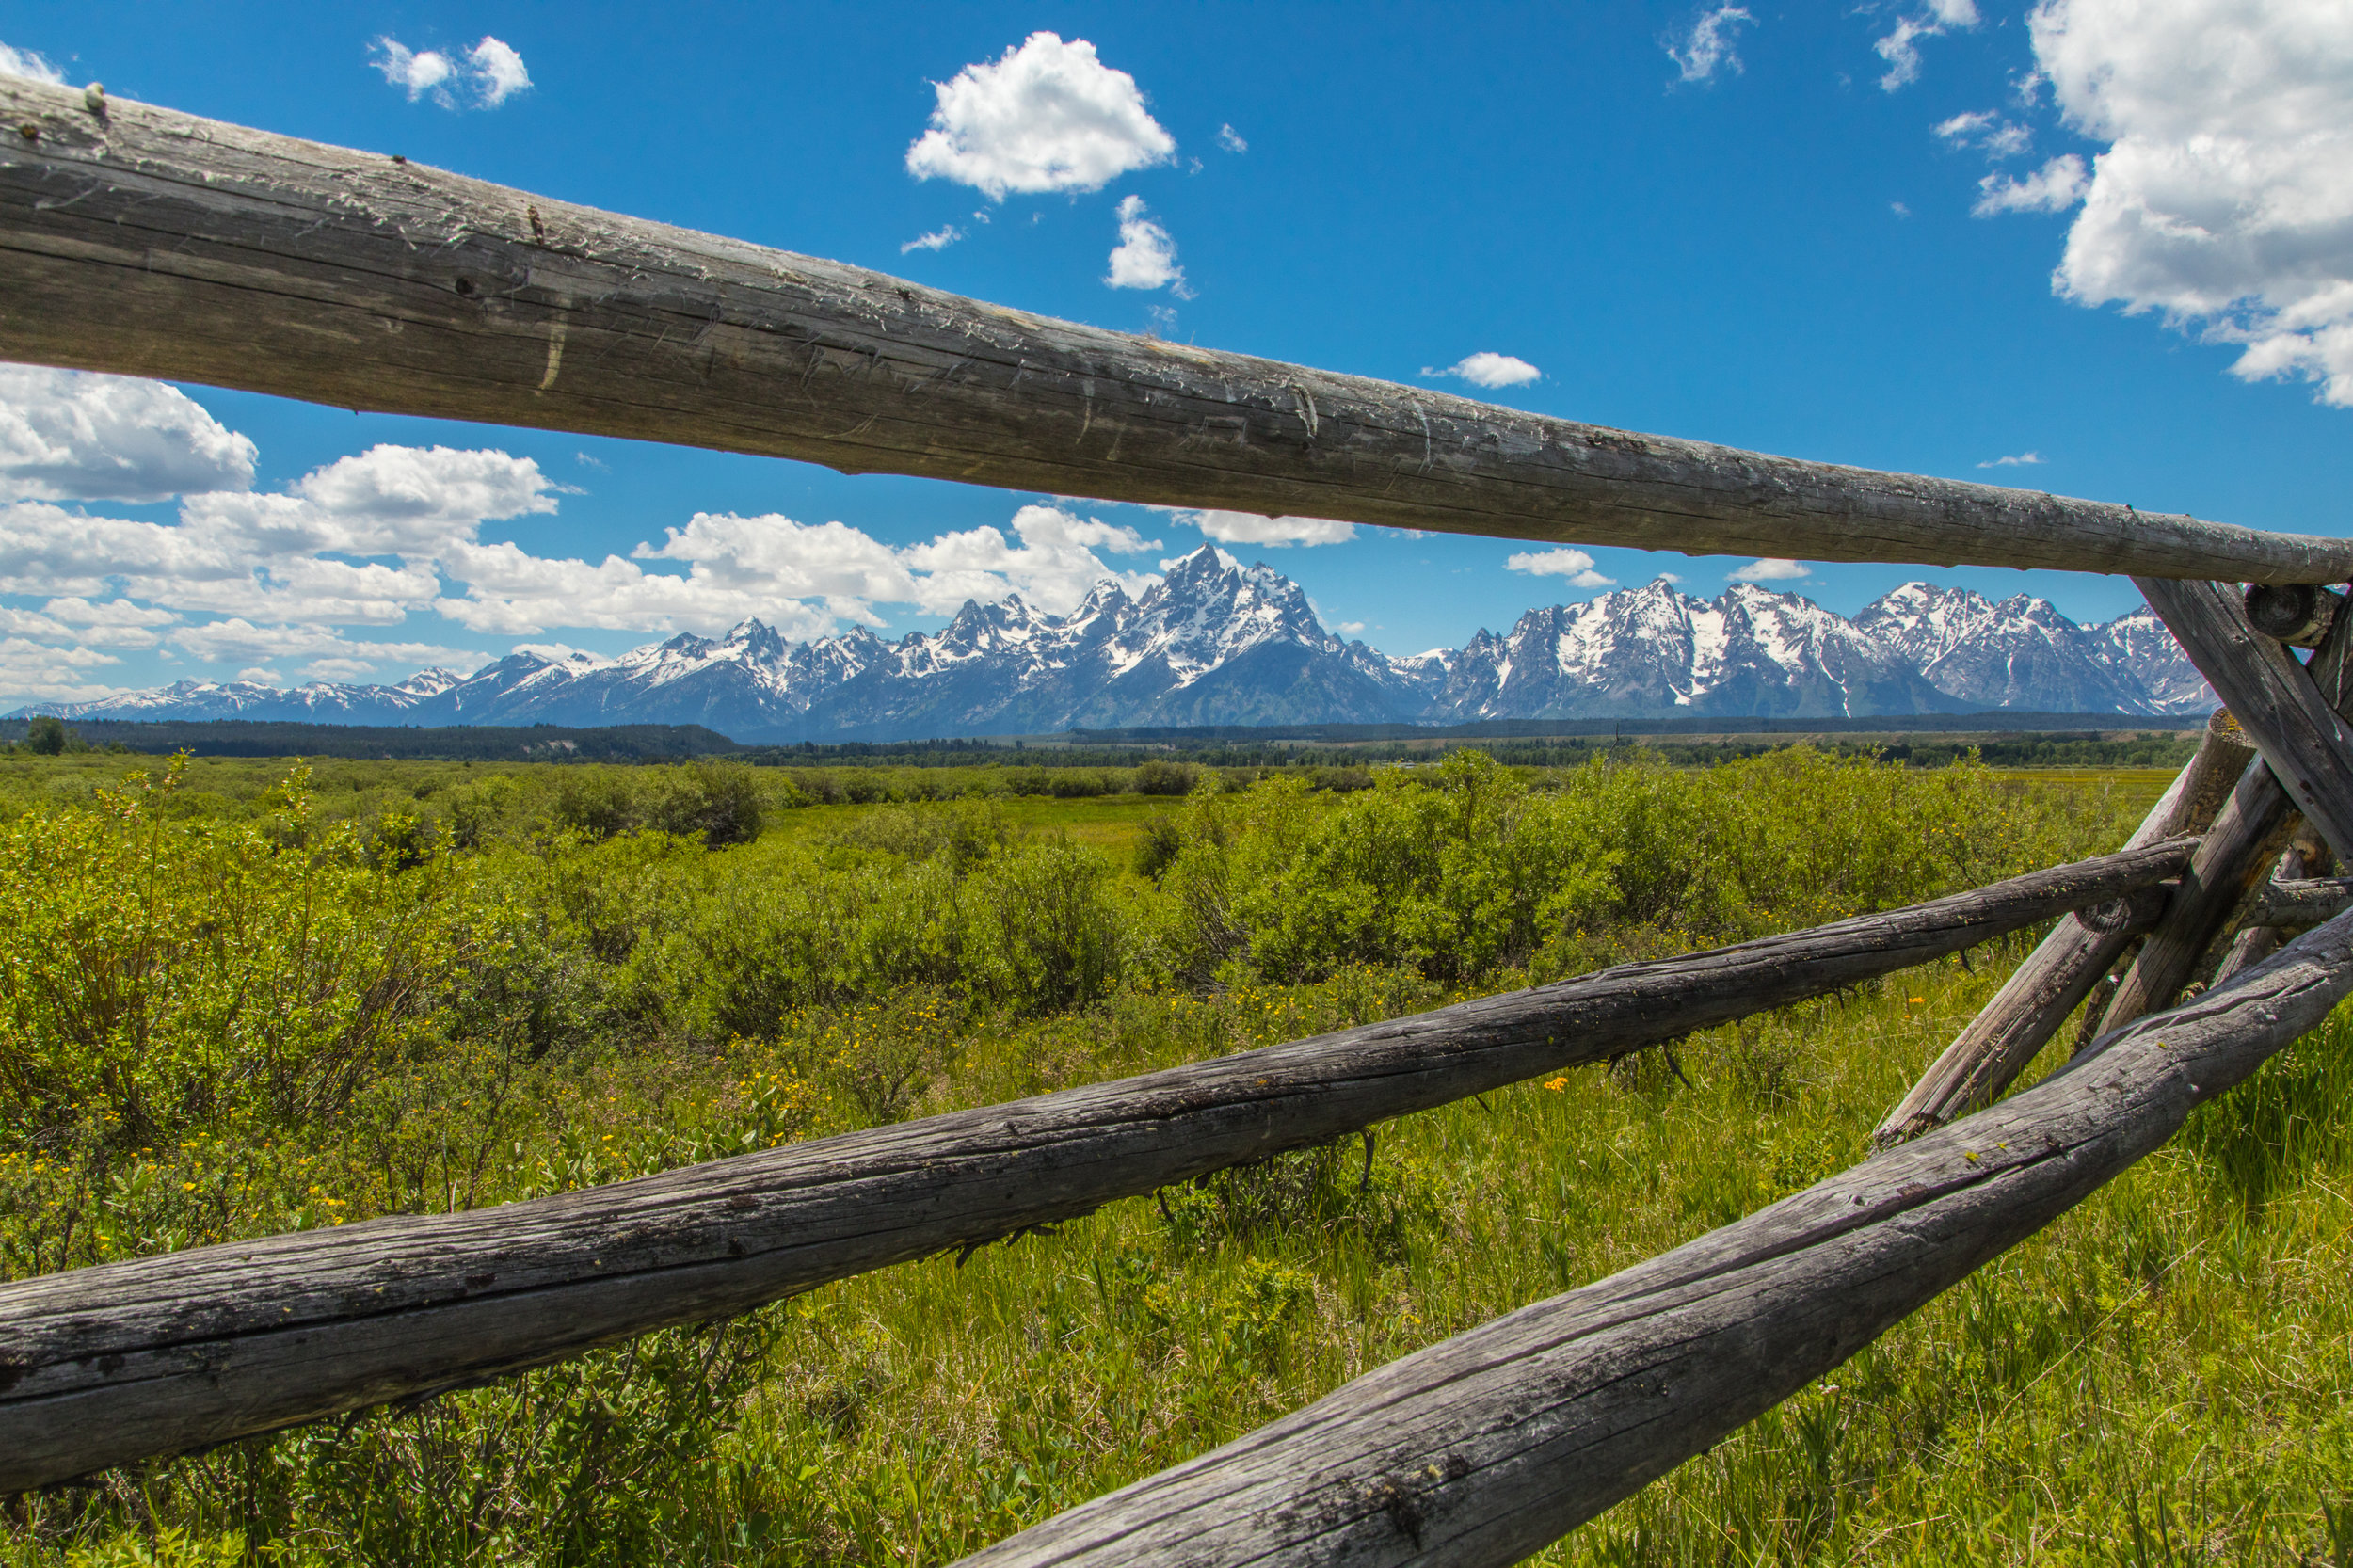 Cunningham Cabin, Grand Teton National Park, Image # 8320